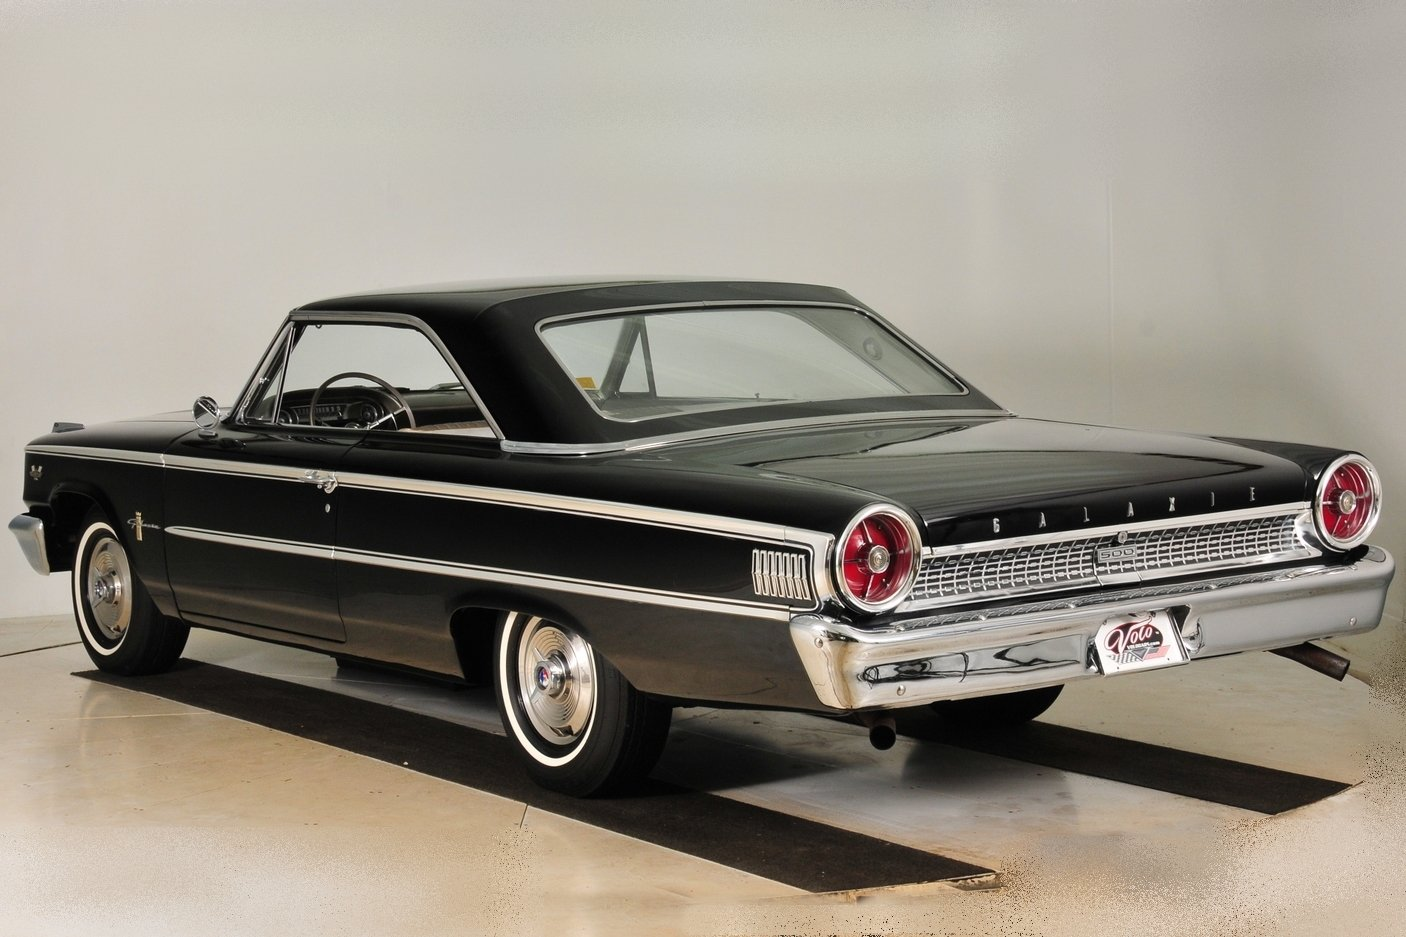 1963 Ford Galaxie 500 | Volo Auto Museum